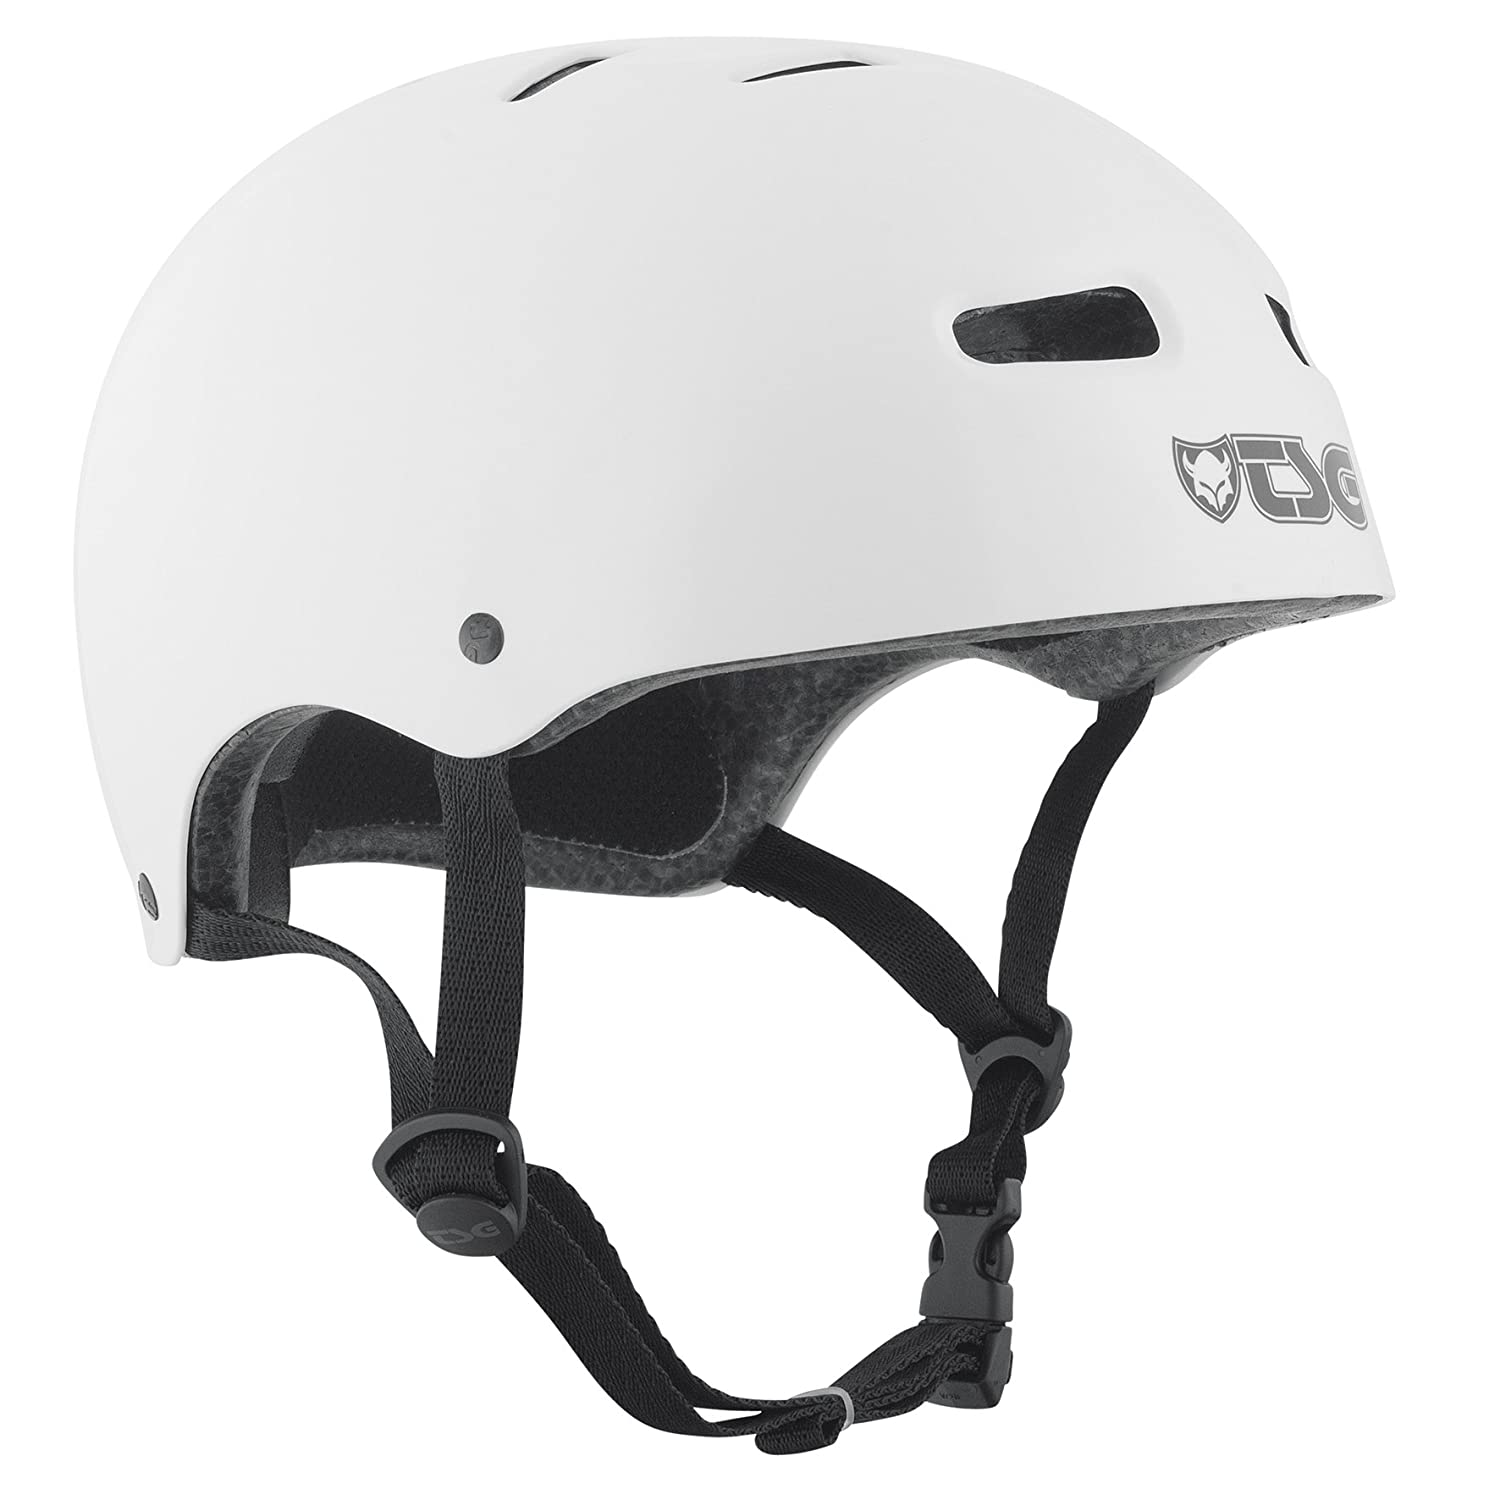 TSG Skate BMX Injected Color Casque Mixte